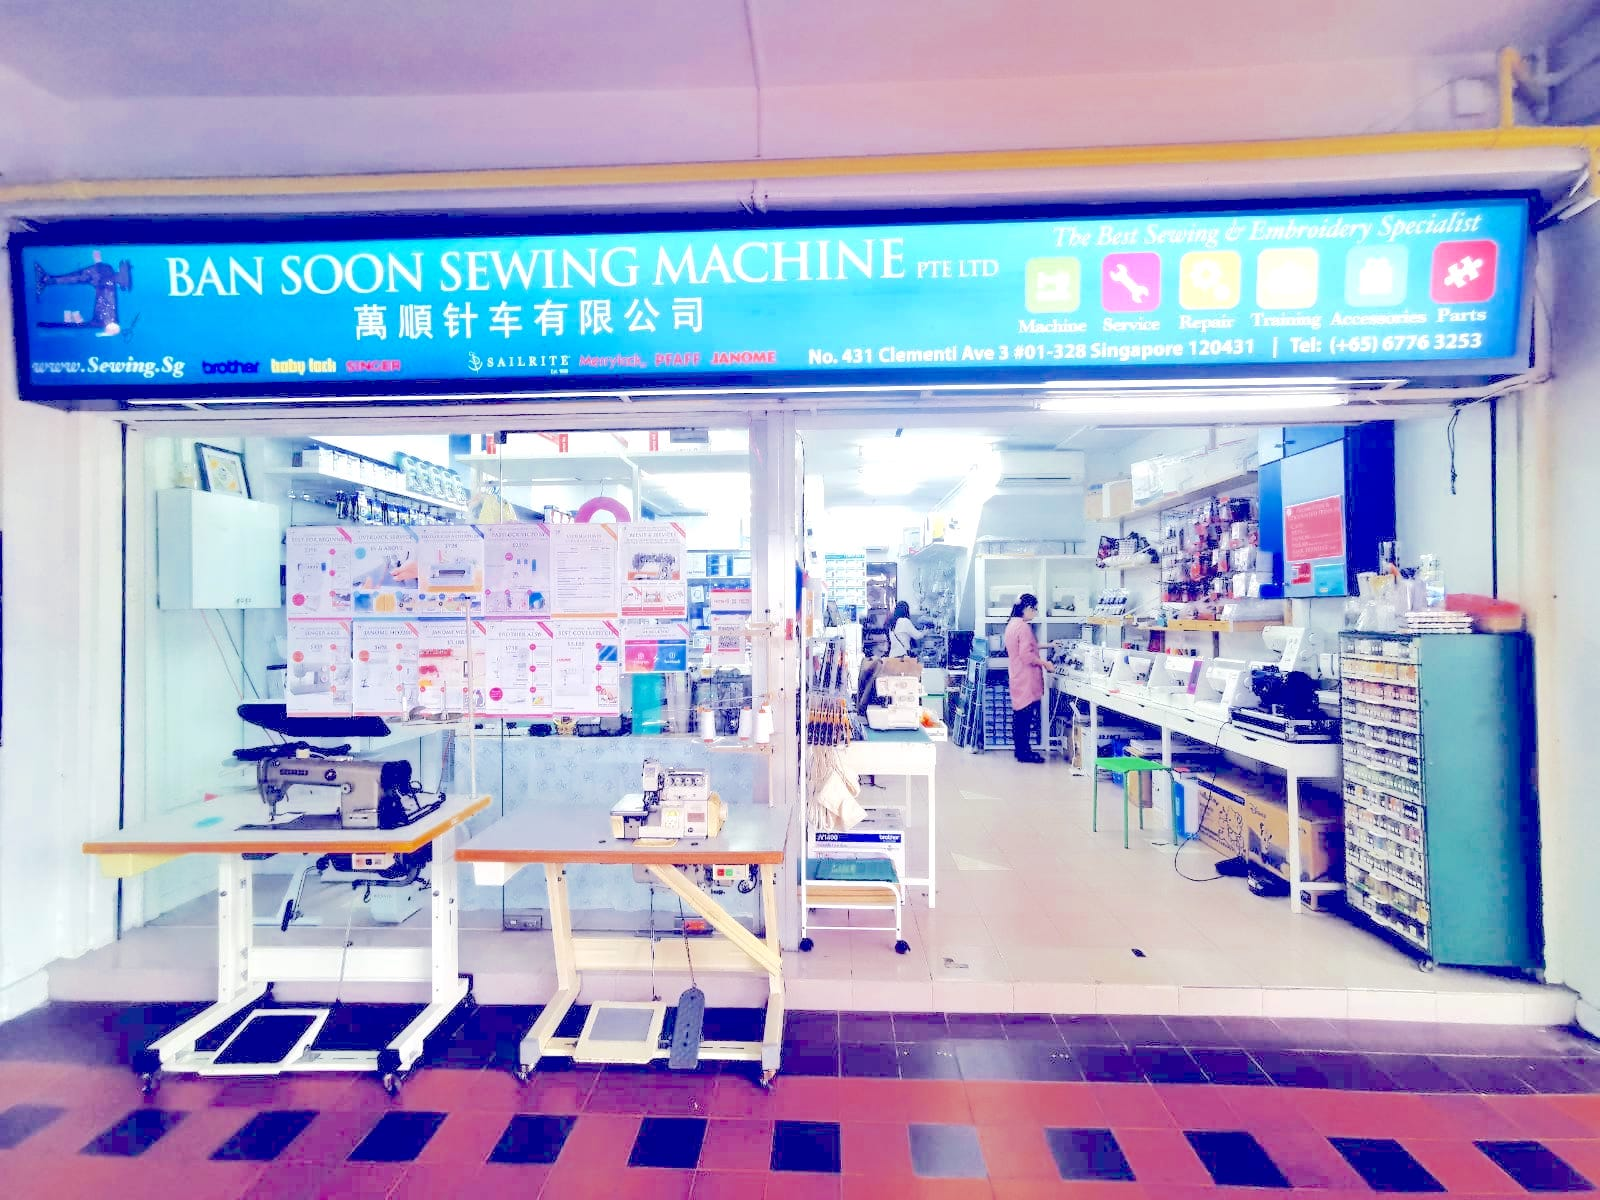 Ban Soon Sewing Machine Pte Ltd www.Sewing.sg Signboard